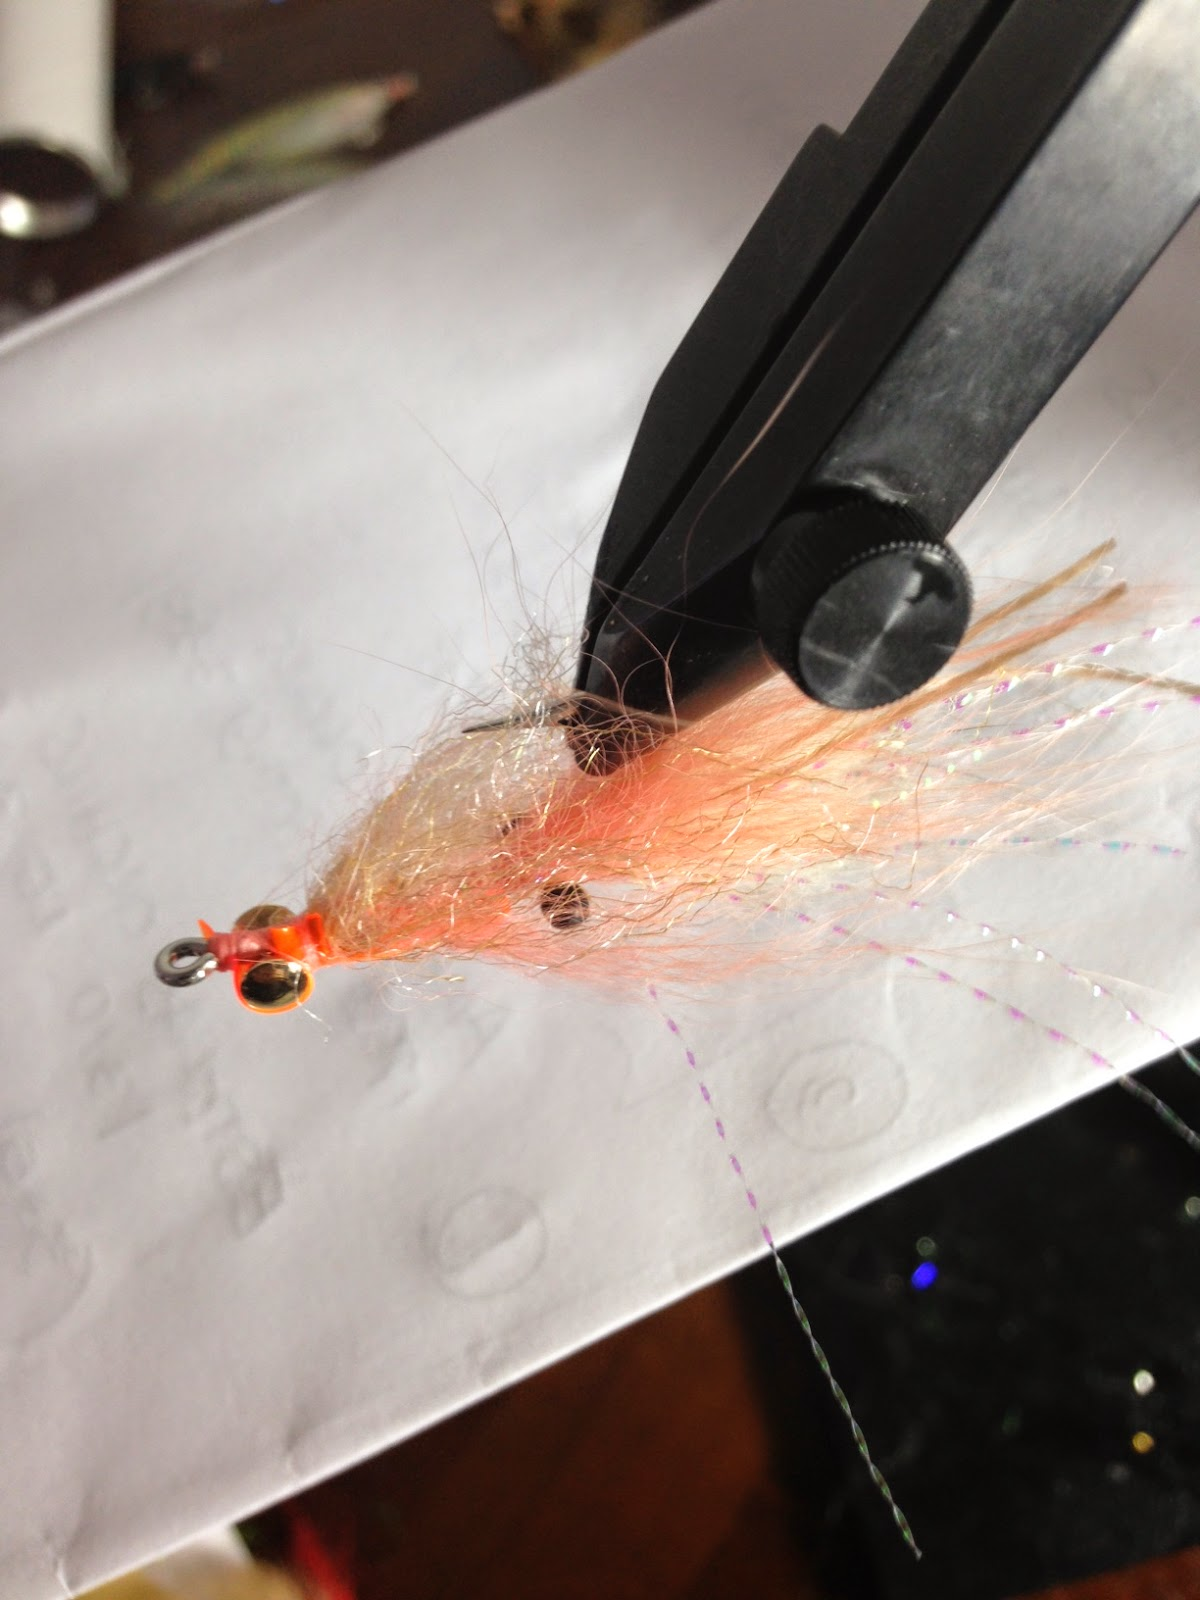 Tail Flyfishing Magazine by Flyfishbonehead.  Flyfishbonehead is fly fishing in saltwater - introducing a world of travel and fishing to fly anglers worldwide - we make saltwater flies & fly tying videos too.  We know bonefish on the fly